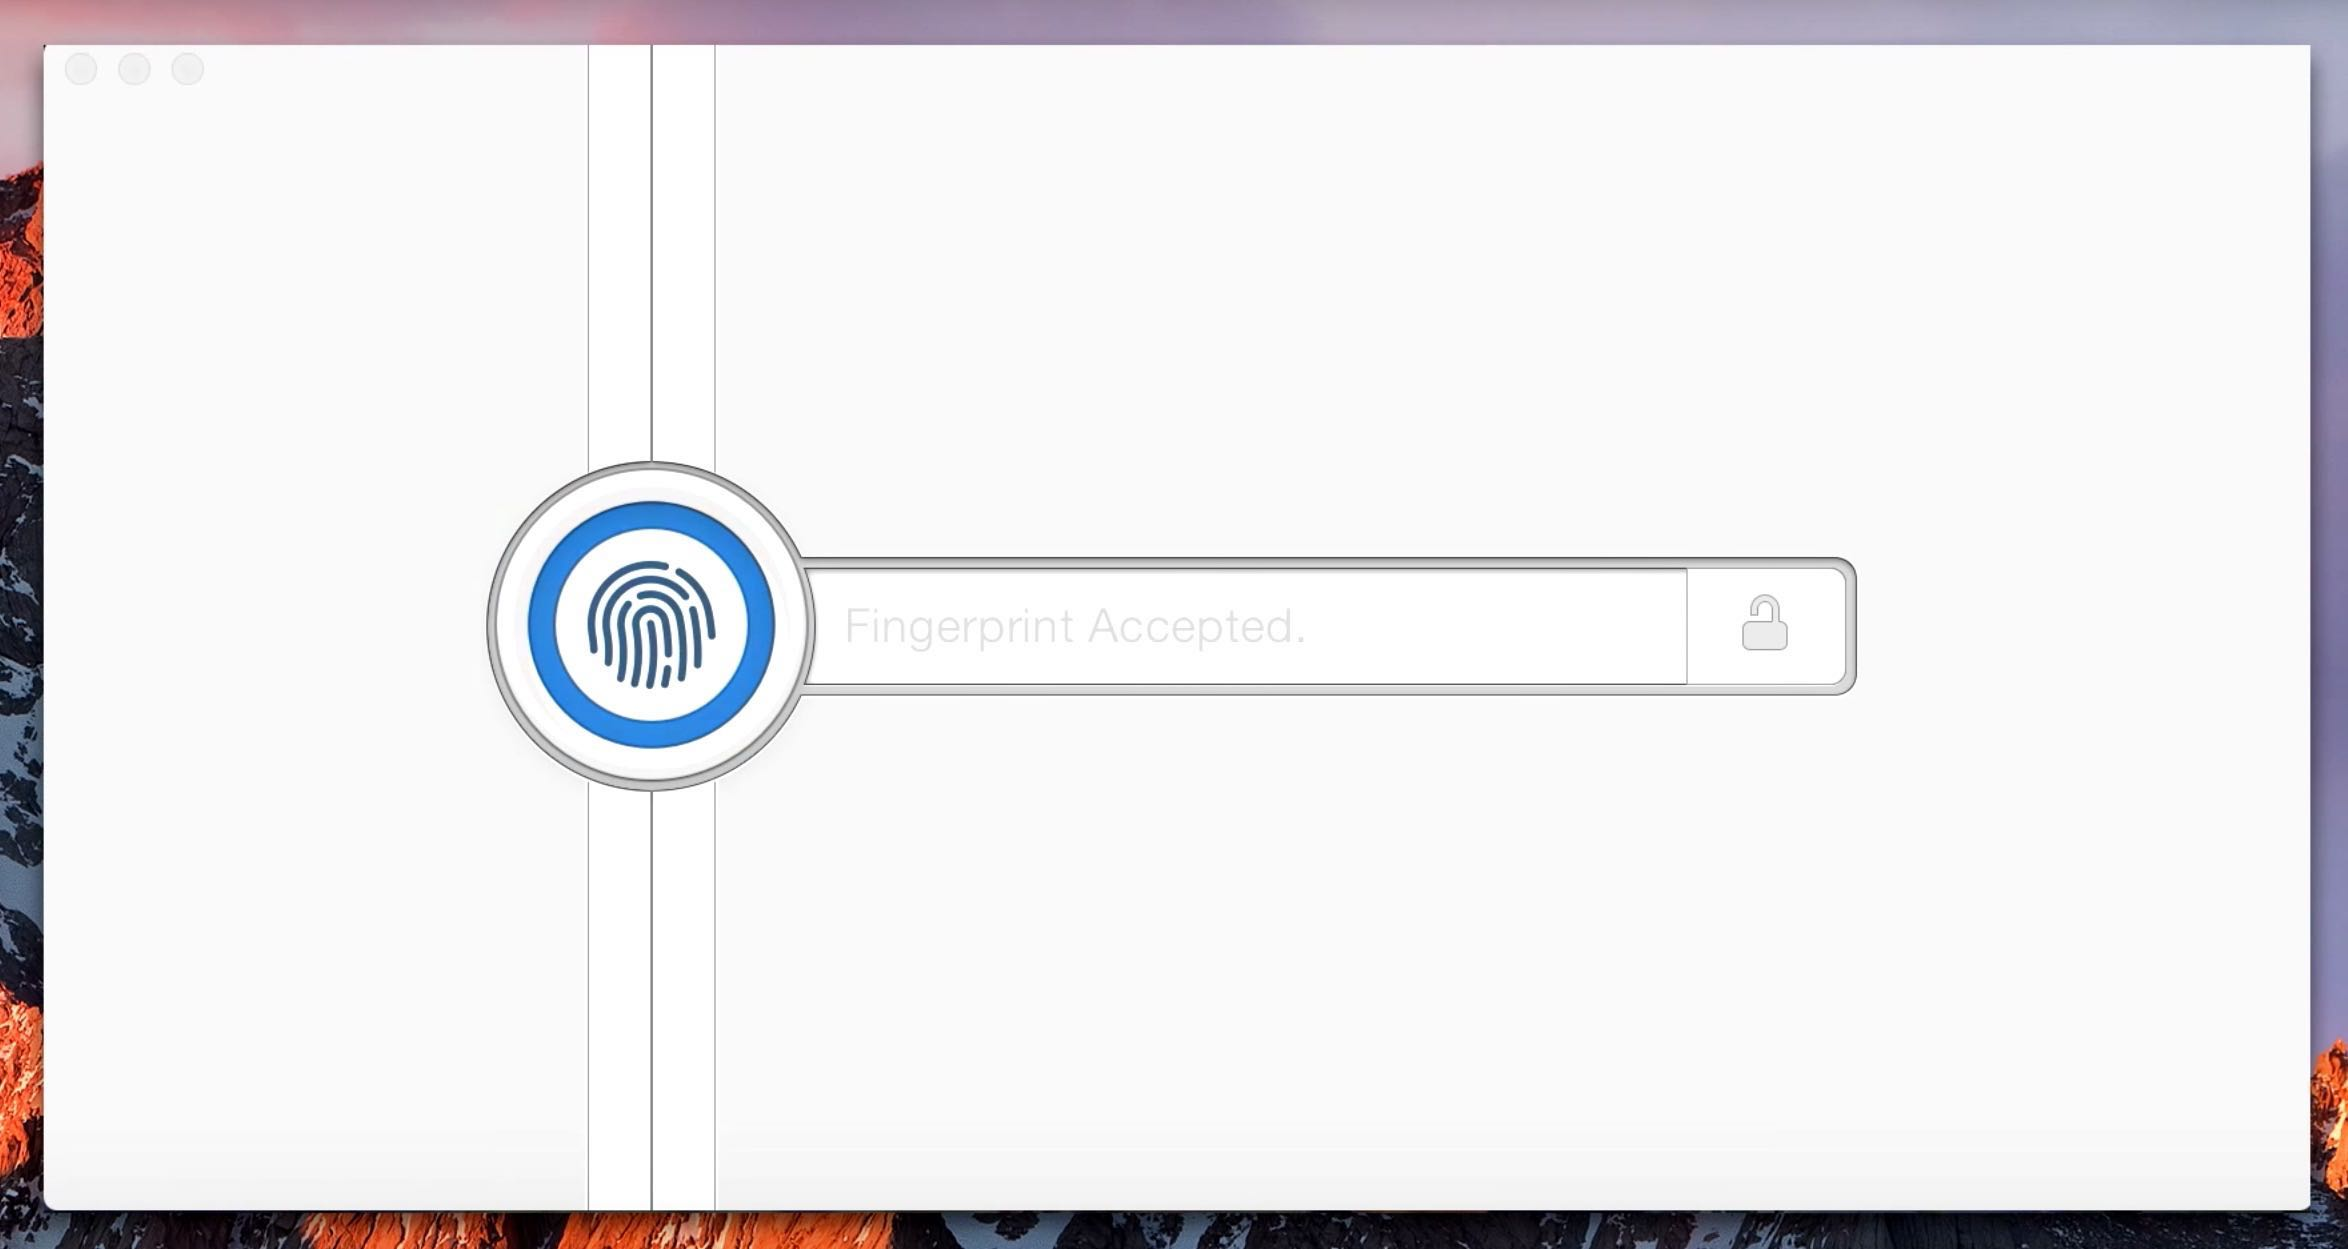 macOS Sierra 1Password Touch ID